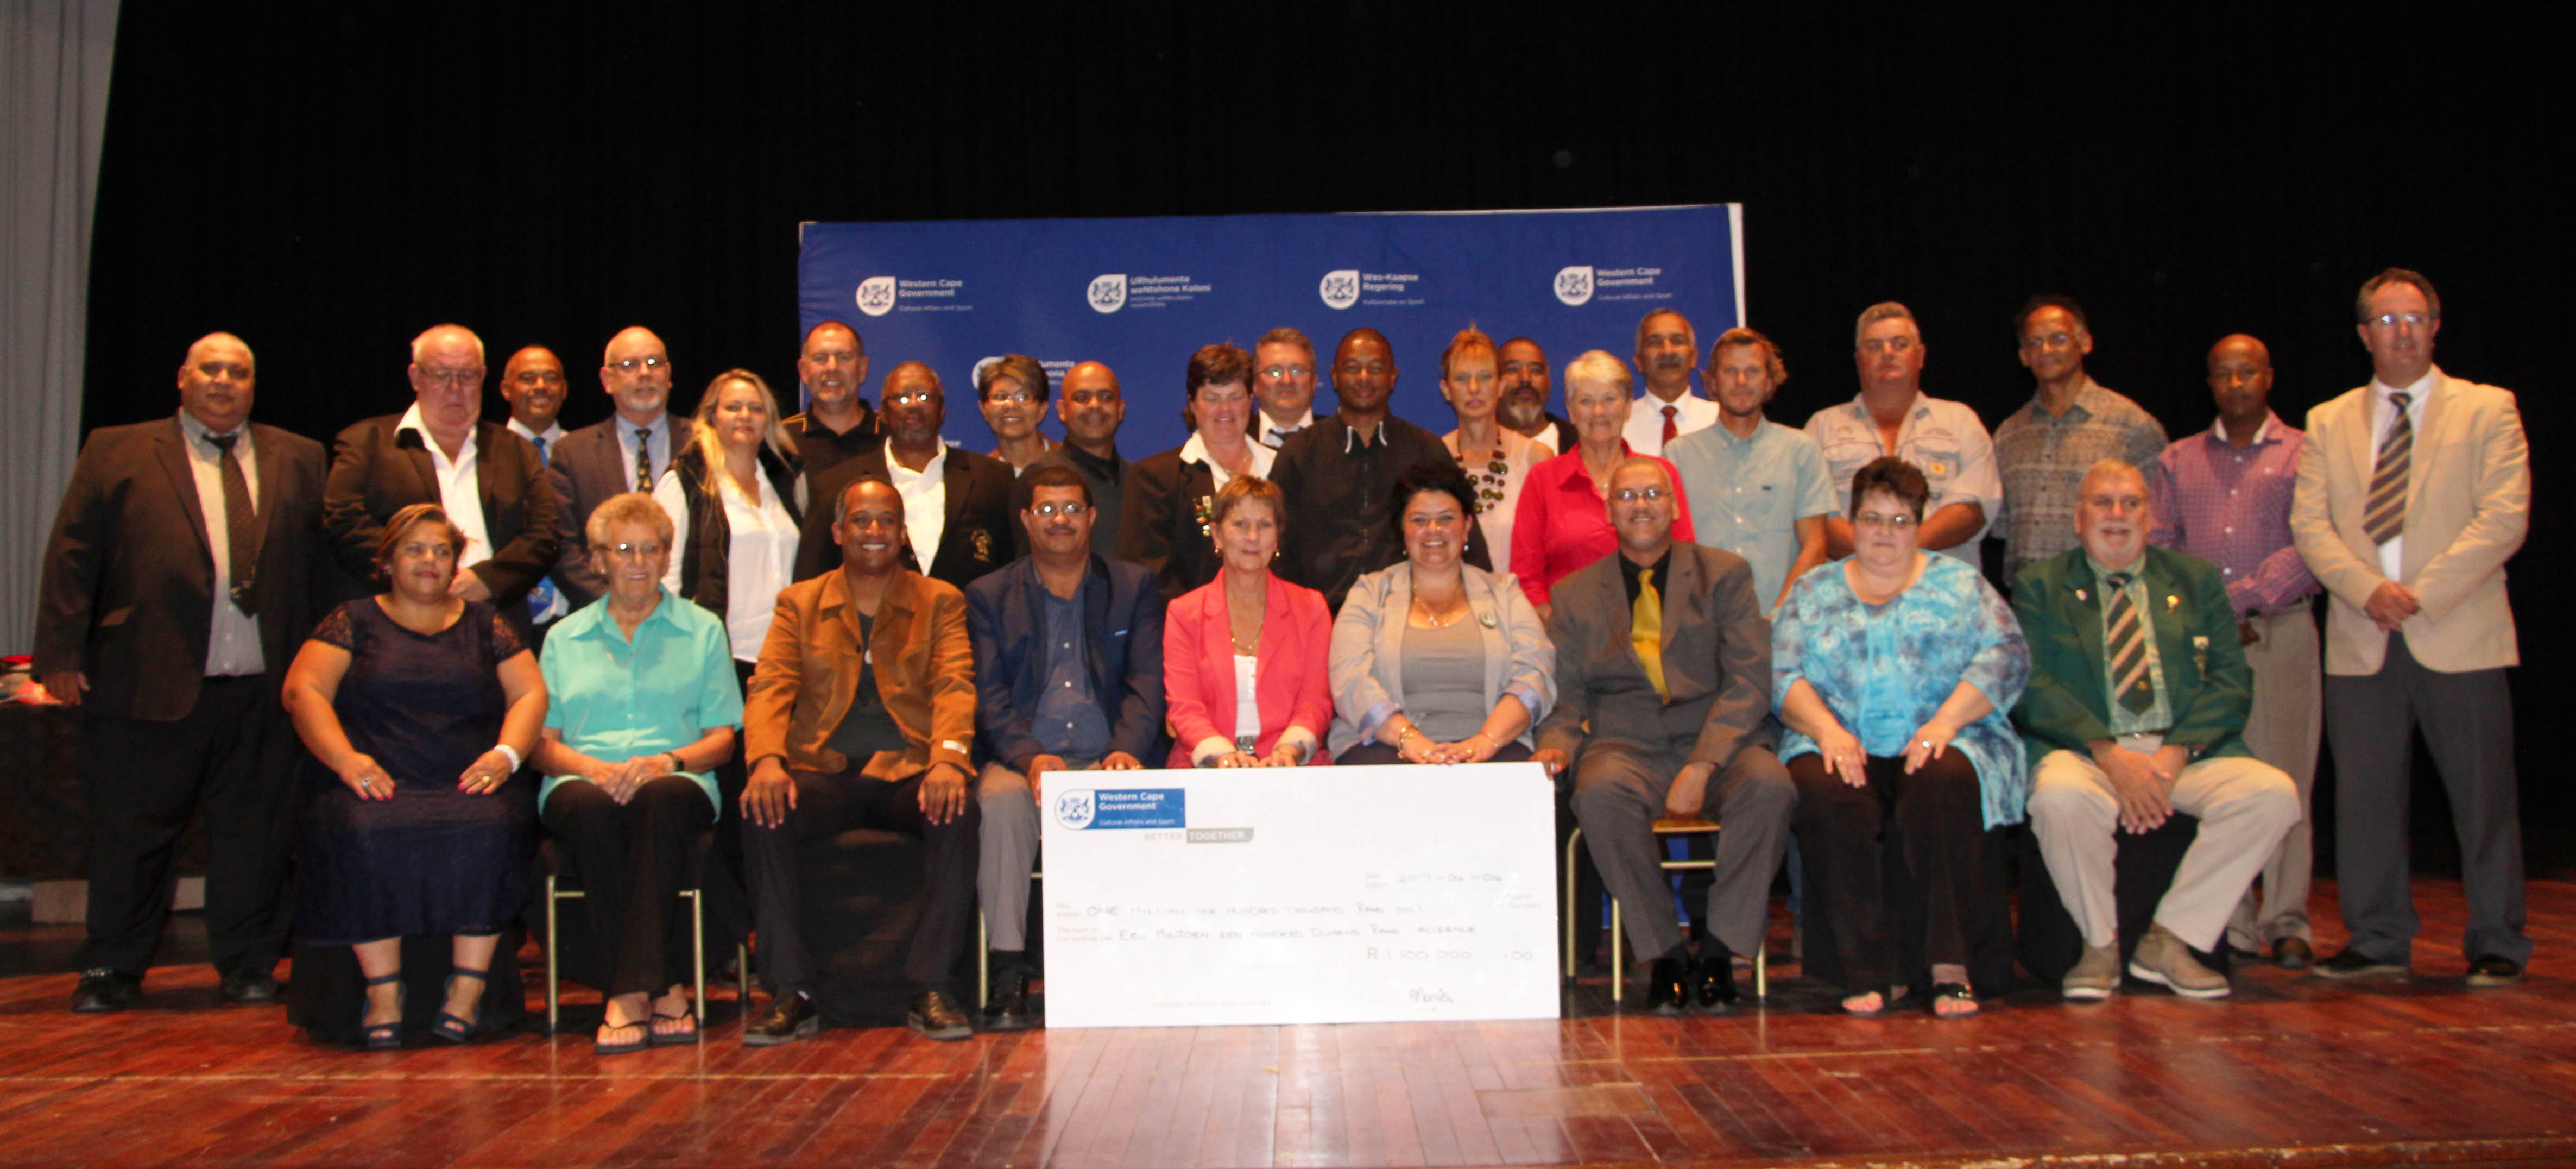 Minister Marais with DCAS staff and representatives from all the federations which received funding